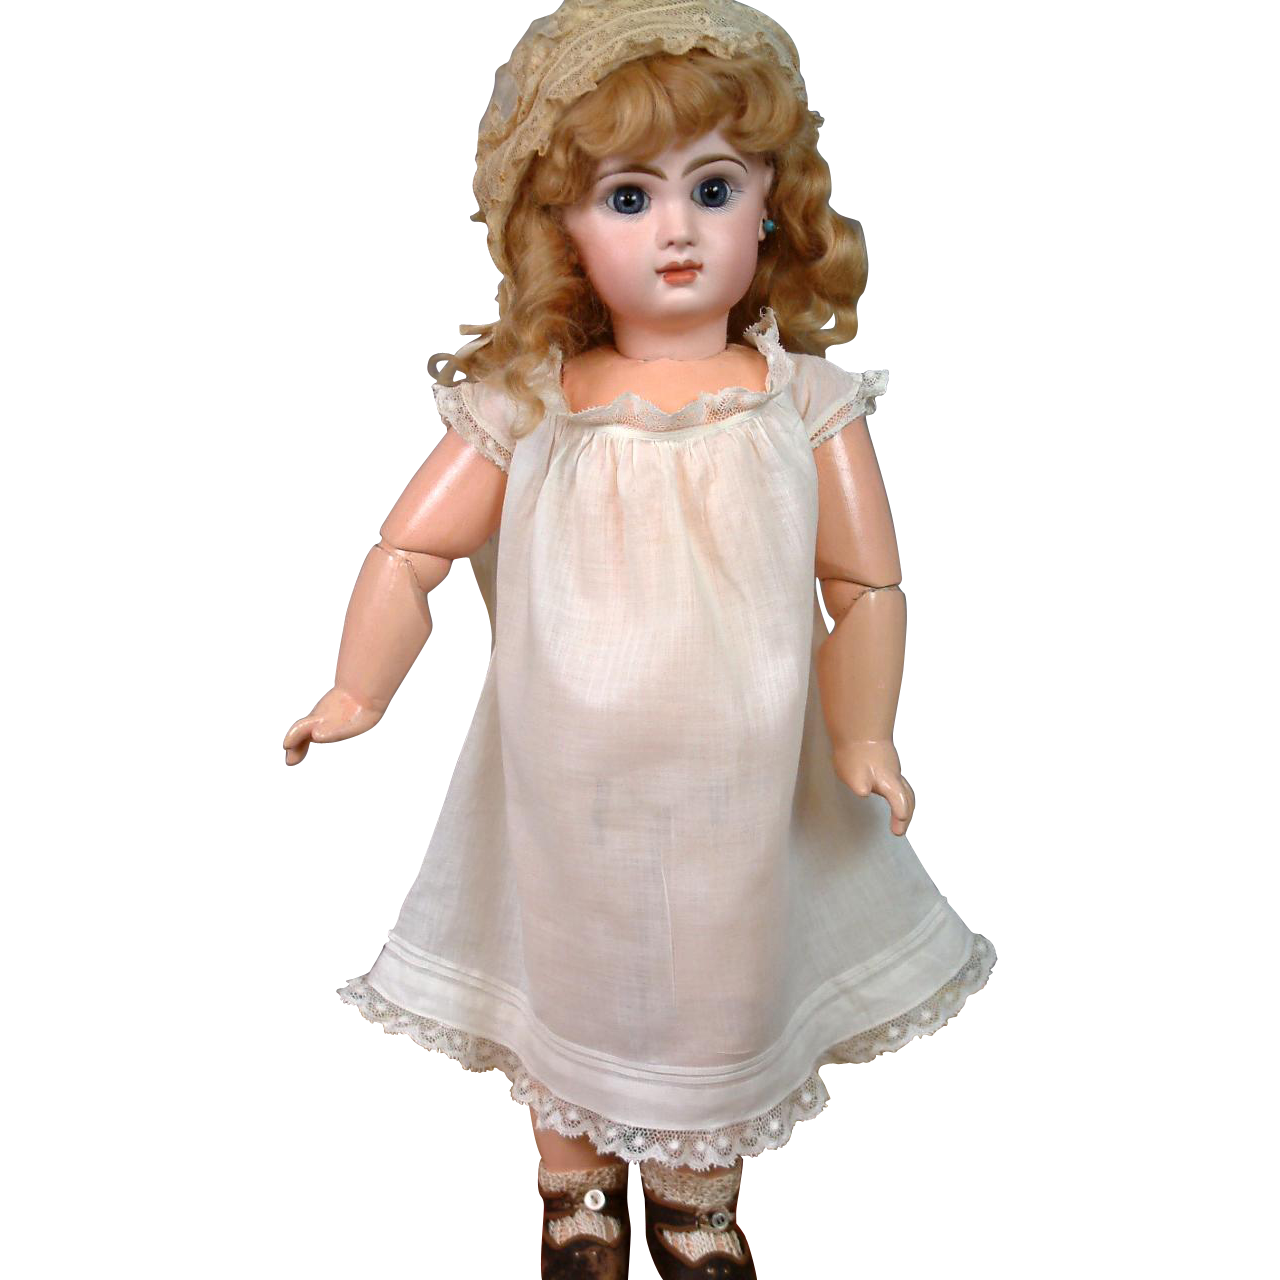 Superb Bebe Nightgown or Chemise C. 1890-95 In Excellent Condition